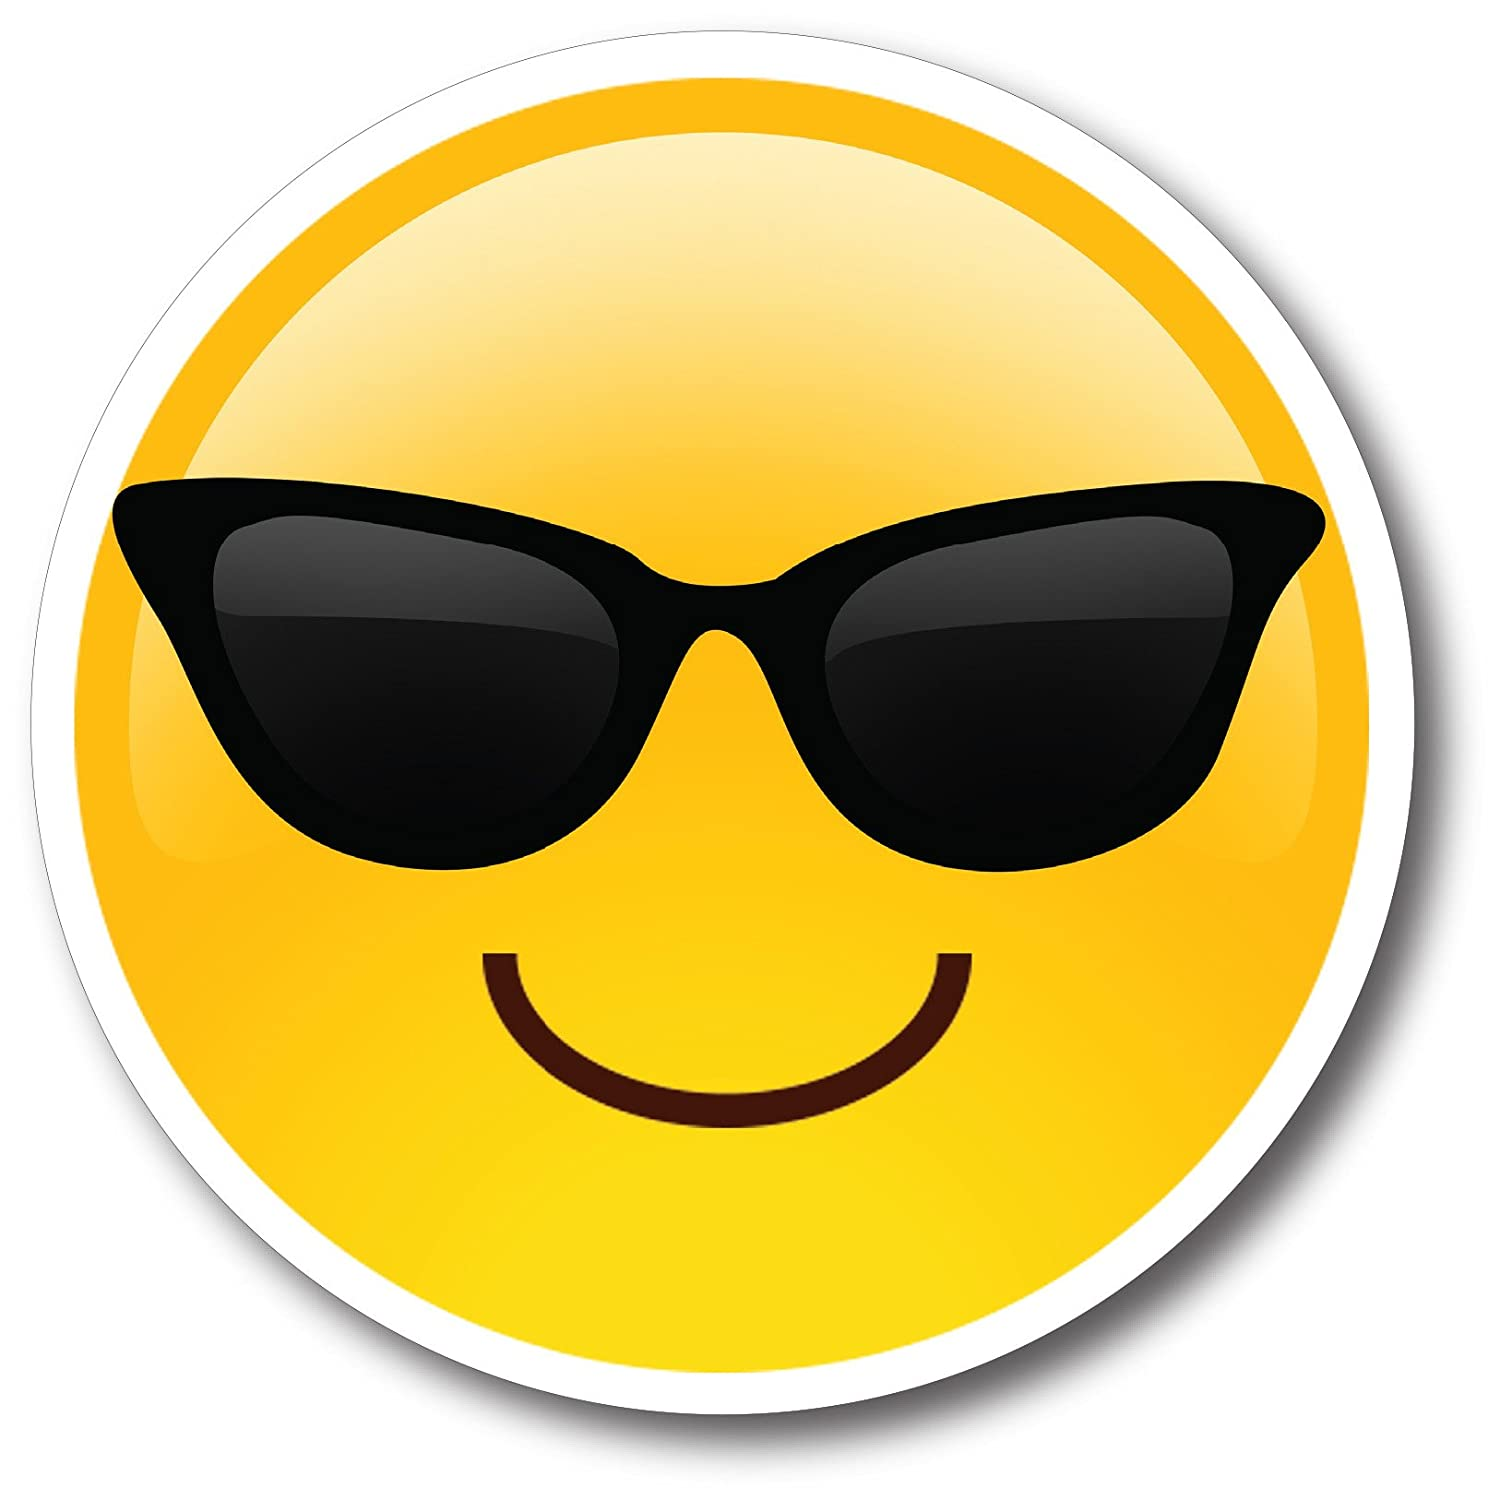 Sunglasses Cool Emoji Magnet Decal Perfect for Car or Truck: Amazon.in:  Home & Kitchen